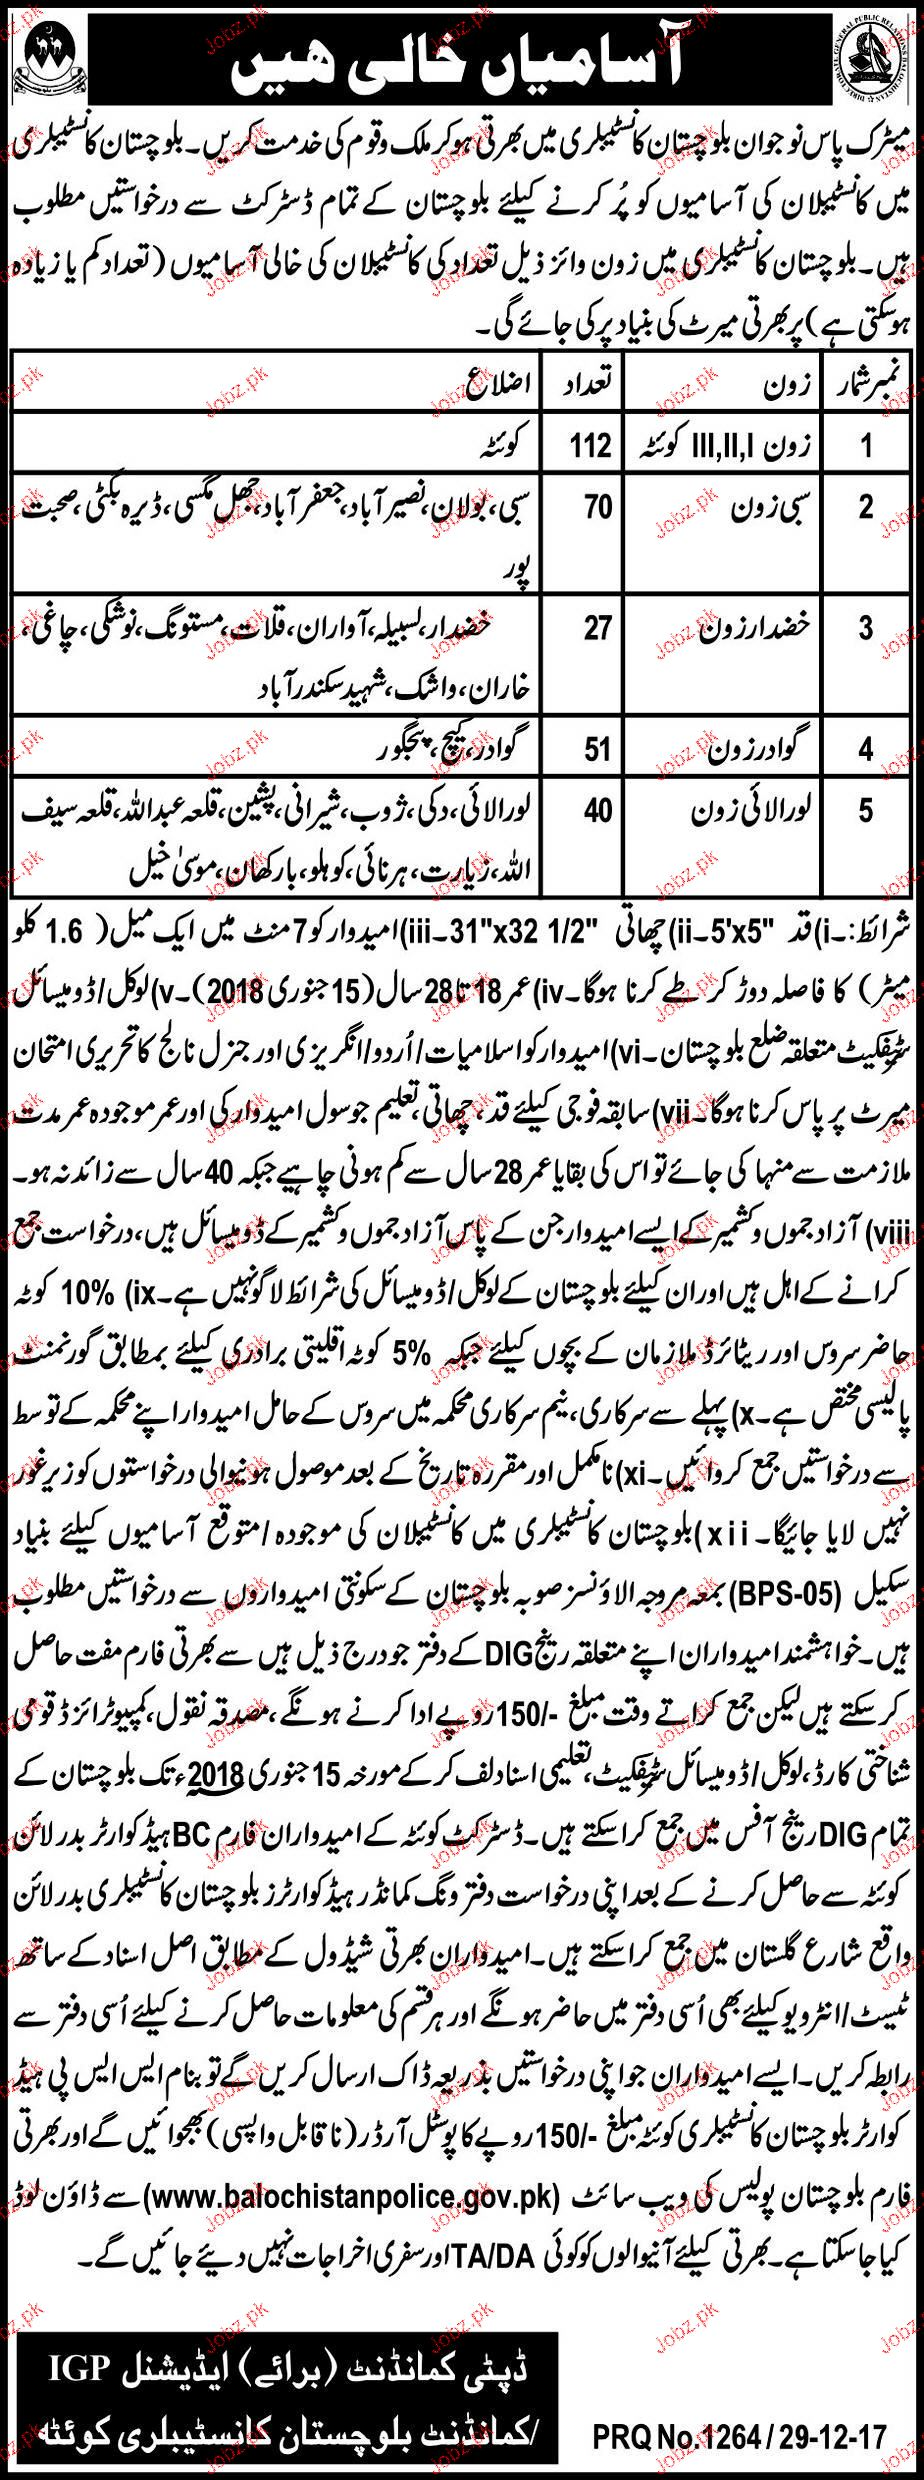 Recruitment of Constables in Balochistan Constabulary